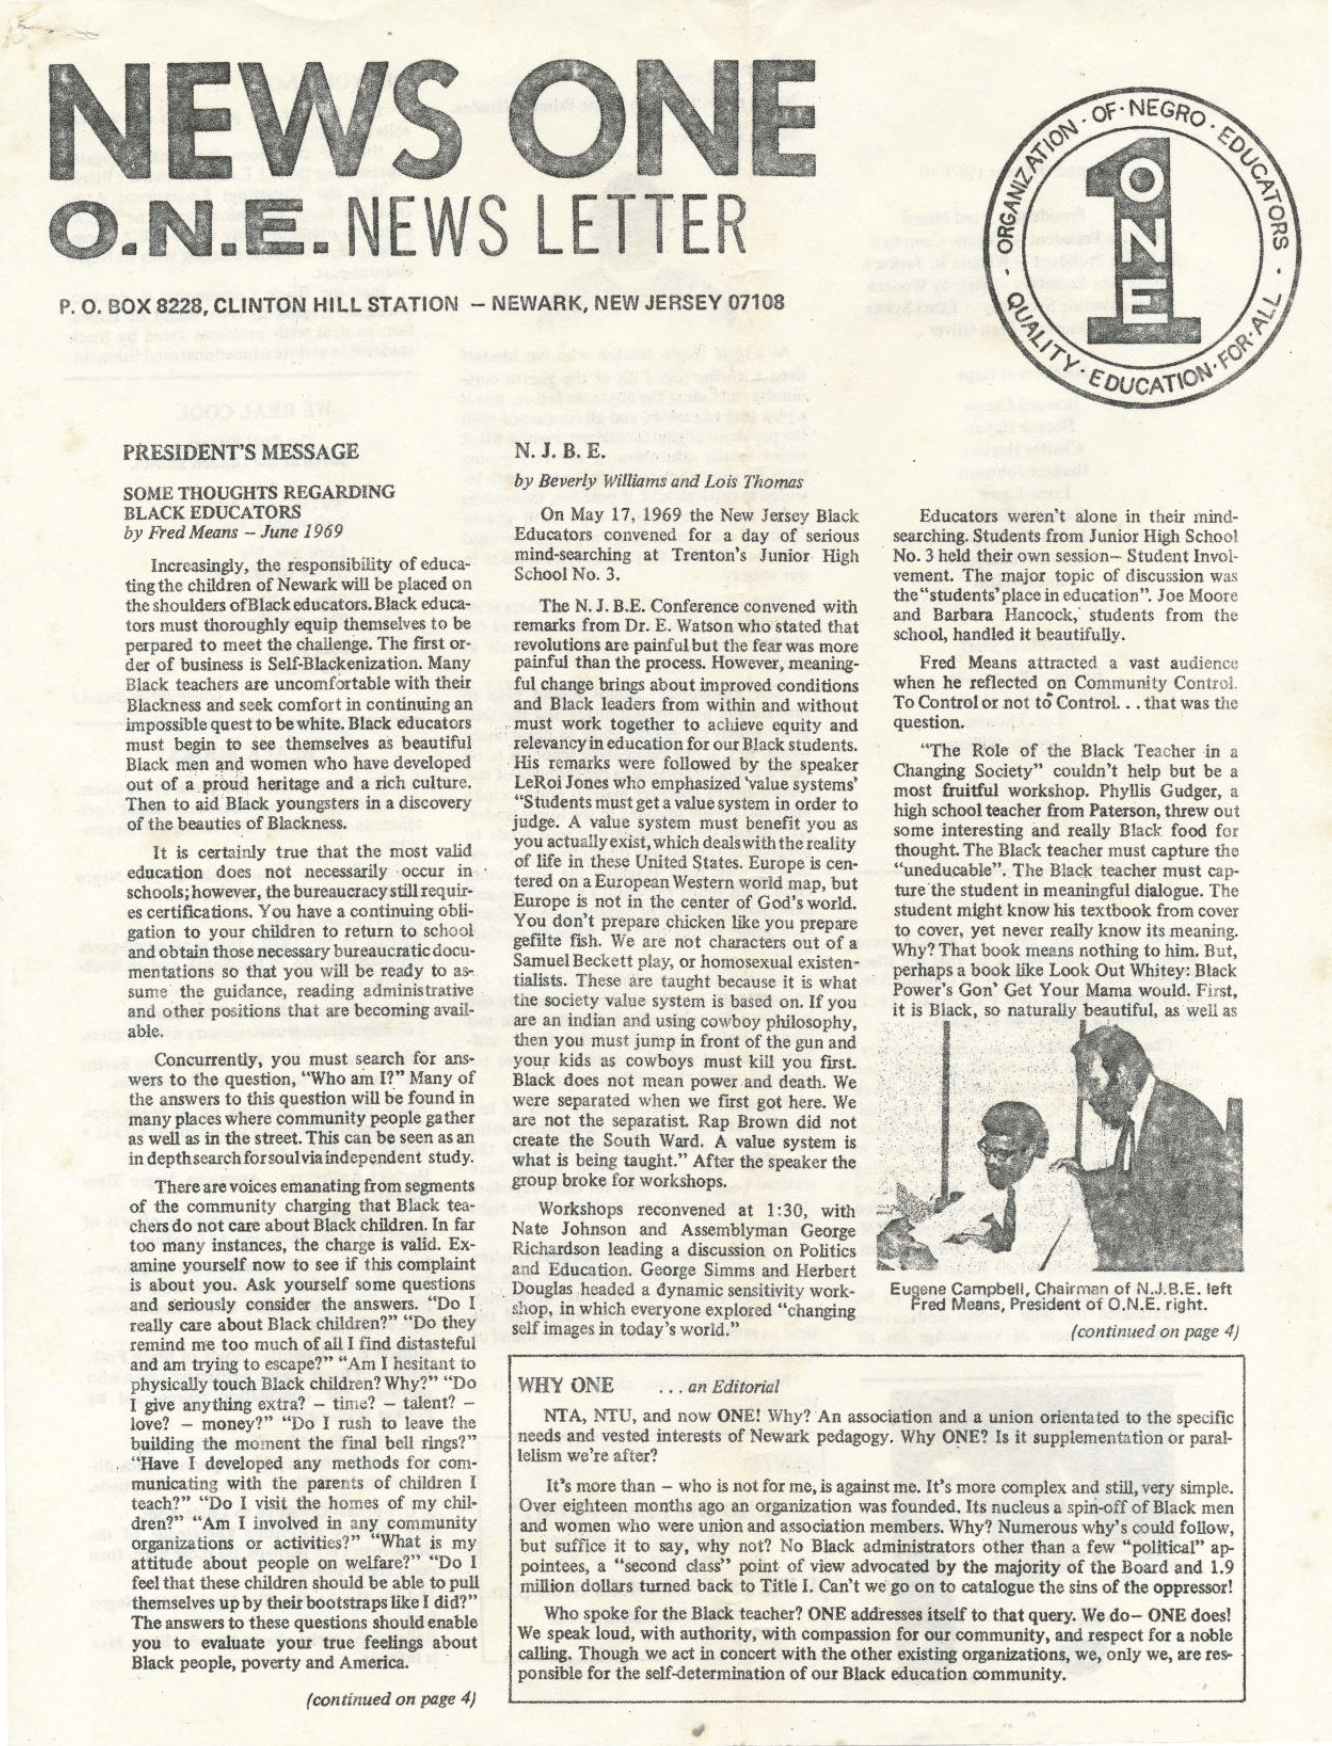 Organization of Negro Educators Newsletter (June 1969)